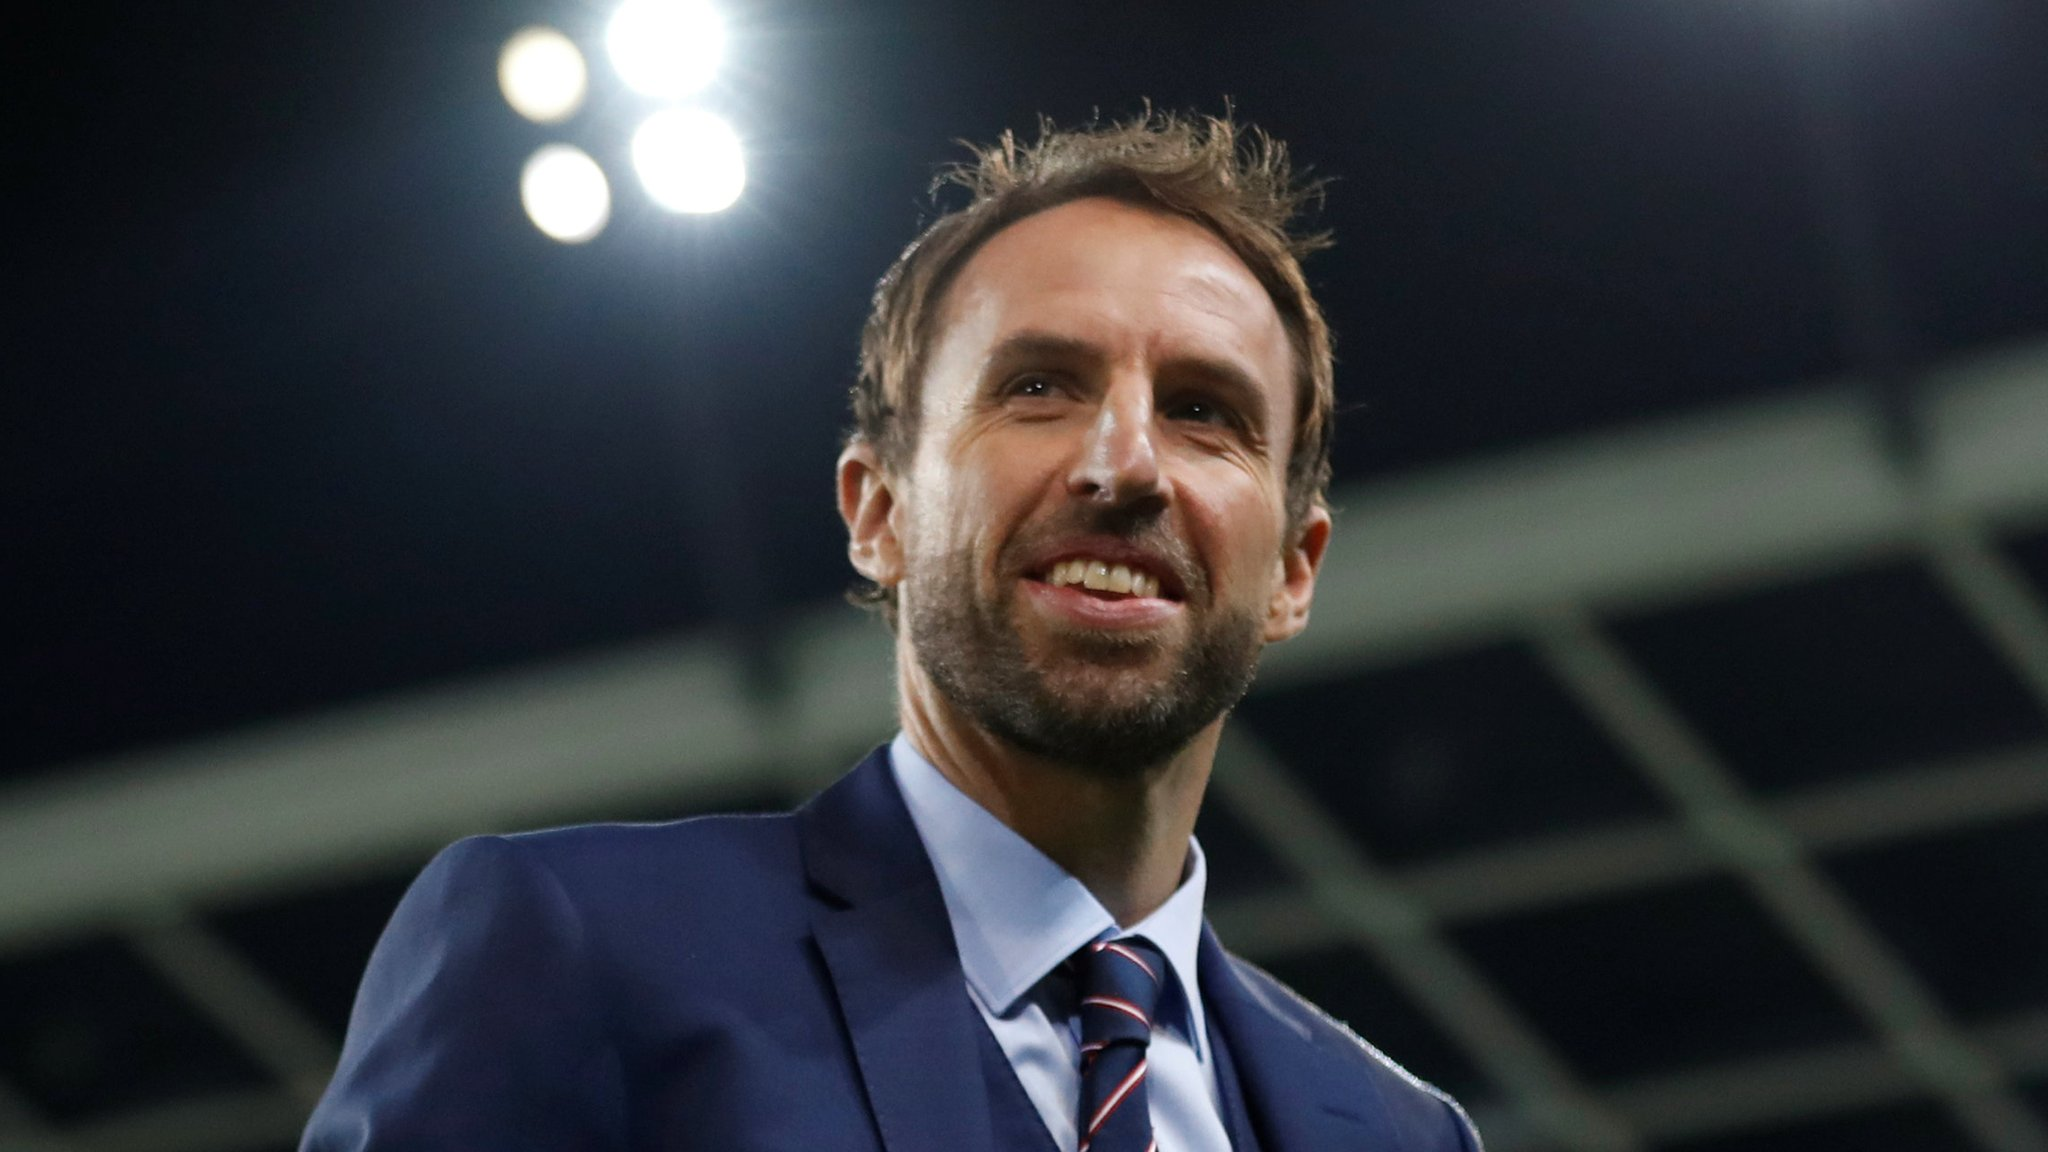 World Cup 2018: England won't win World Cup but draw gives us chance to improve - Alan Shearer